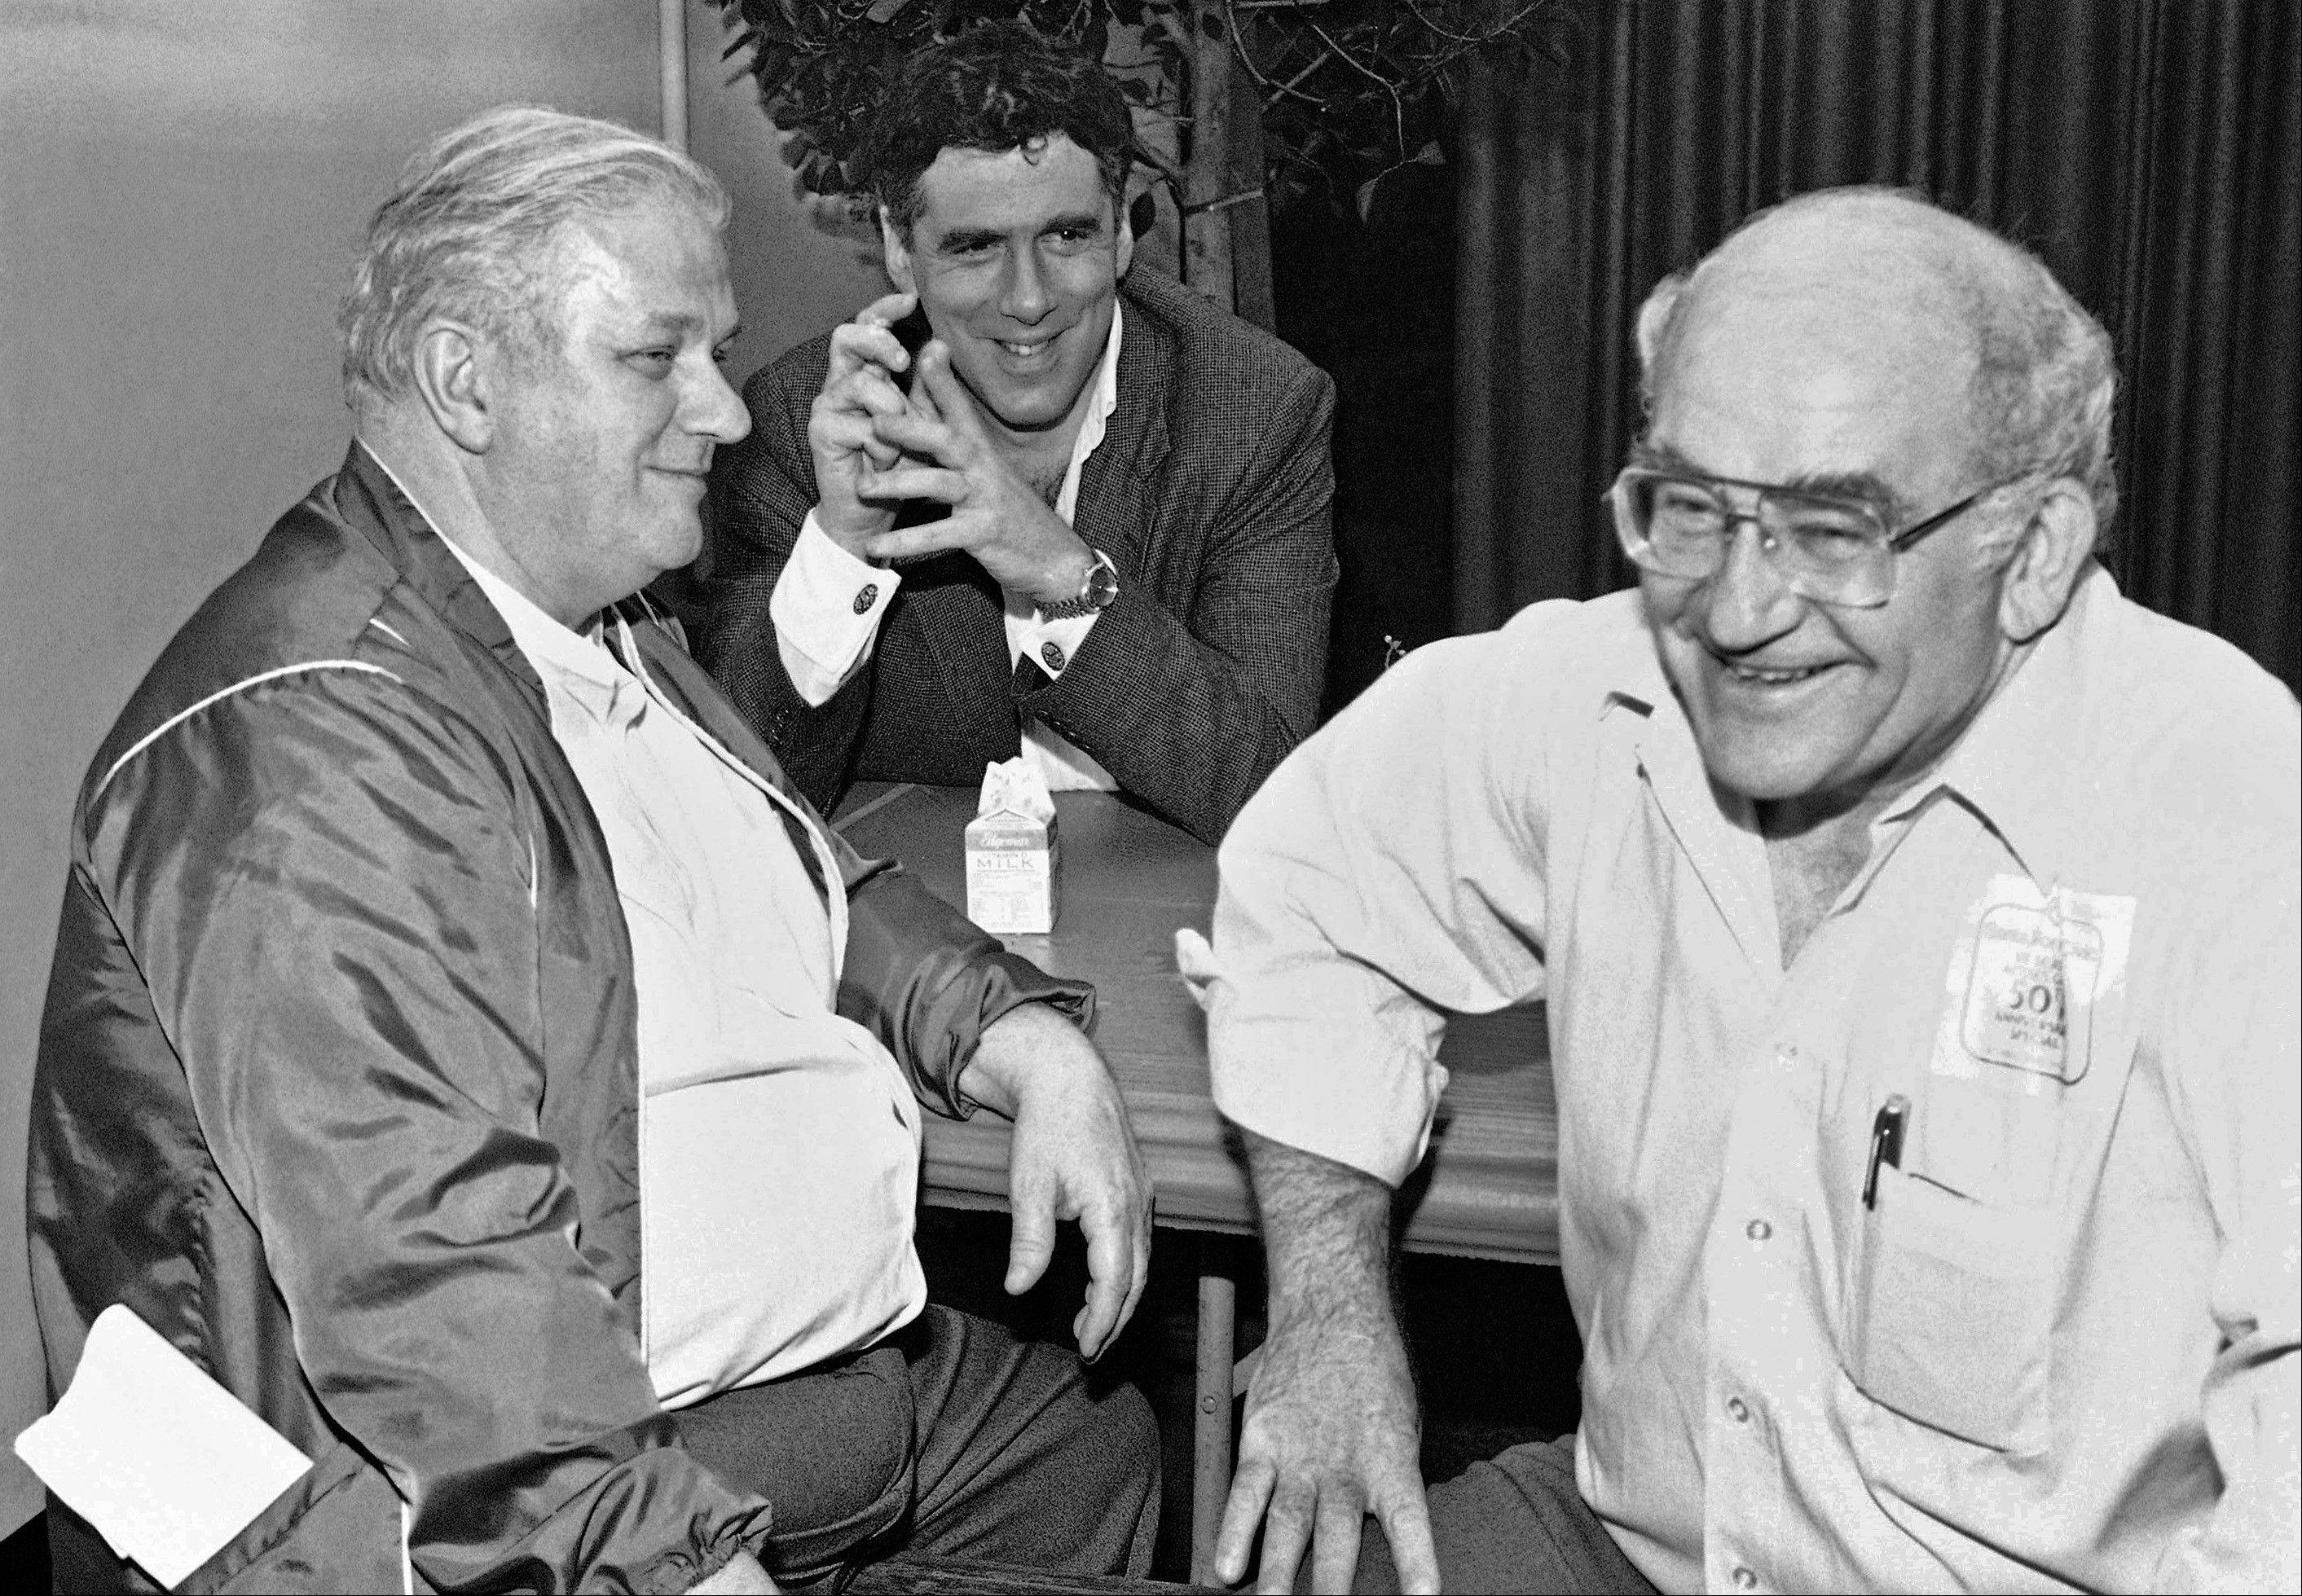 In this Saturday, March 3, 1984 file photo, from left, actors Charles Durning, Eliott Gould and Screen Actors Guild President Ed Asner take a break before the filming of the 50th Anniversary Special celebrating the guild in Santa Monica, Calif. Durning, the two-time Oscar nominee who was dubbed the king of the character actors for his skill in playing everything from a Nazi colonel to the pope, died Monday, Dec. 24, 2012 at his home in New York City. He was 89.